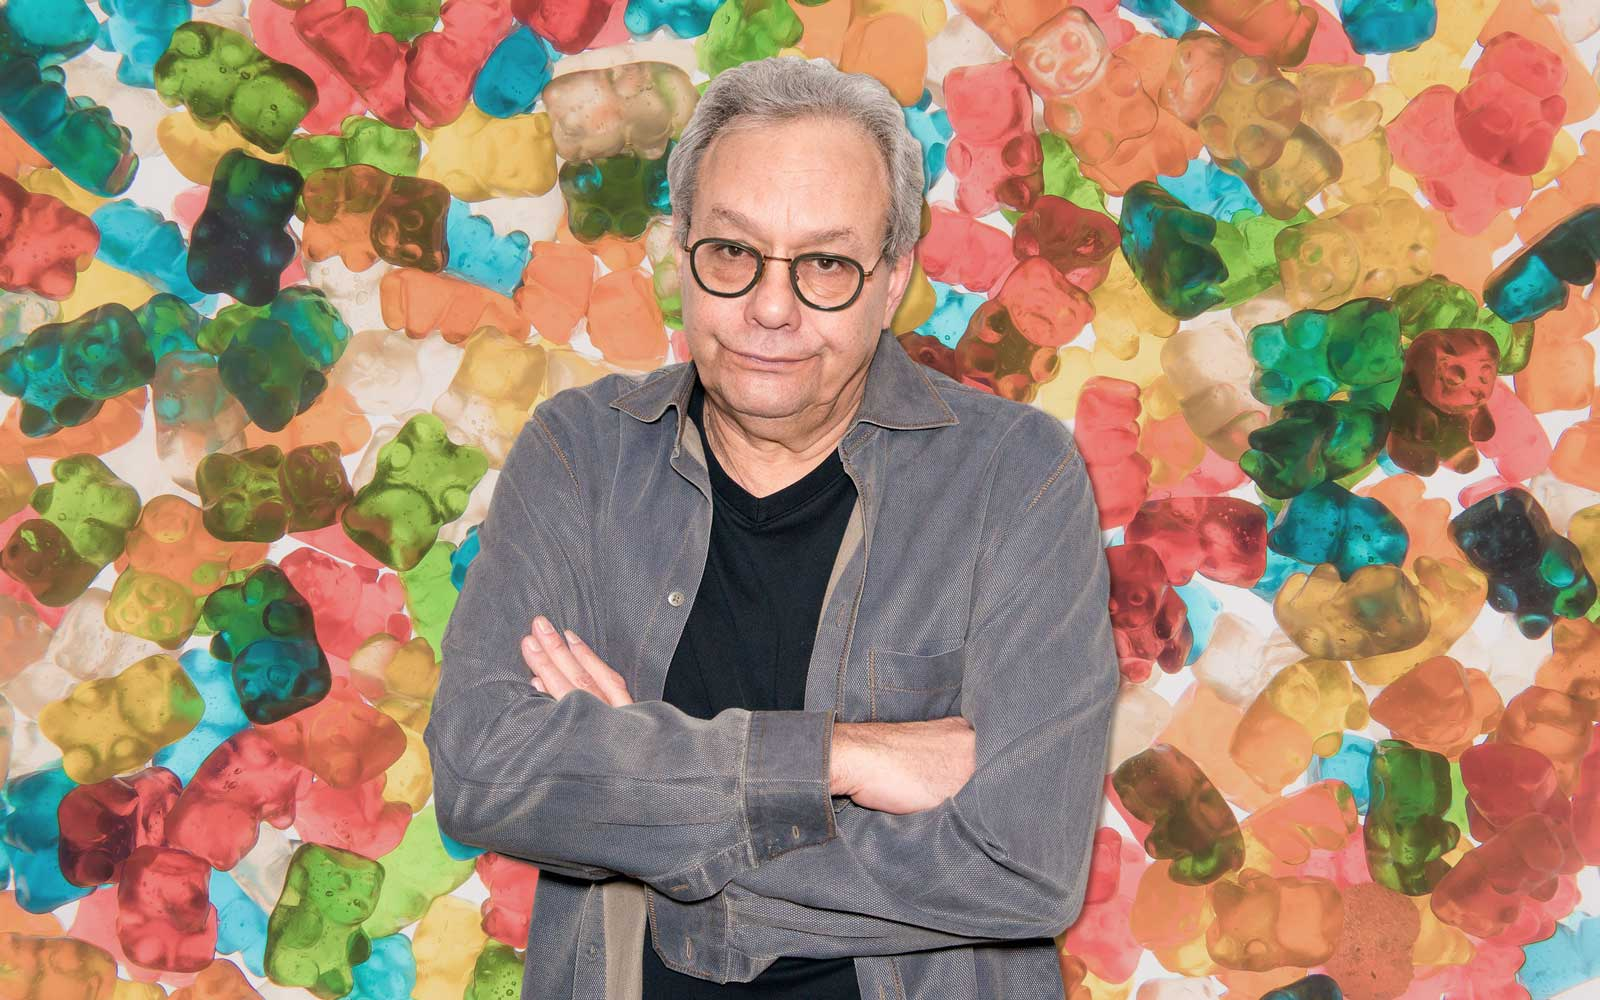 Comedian Lewis Black with gummy bears in background